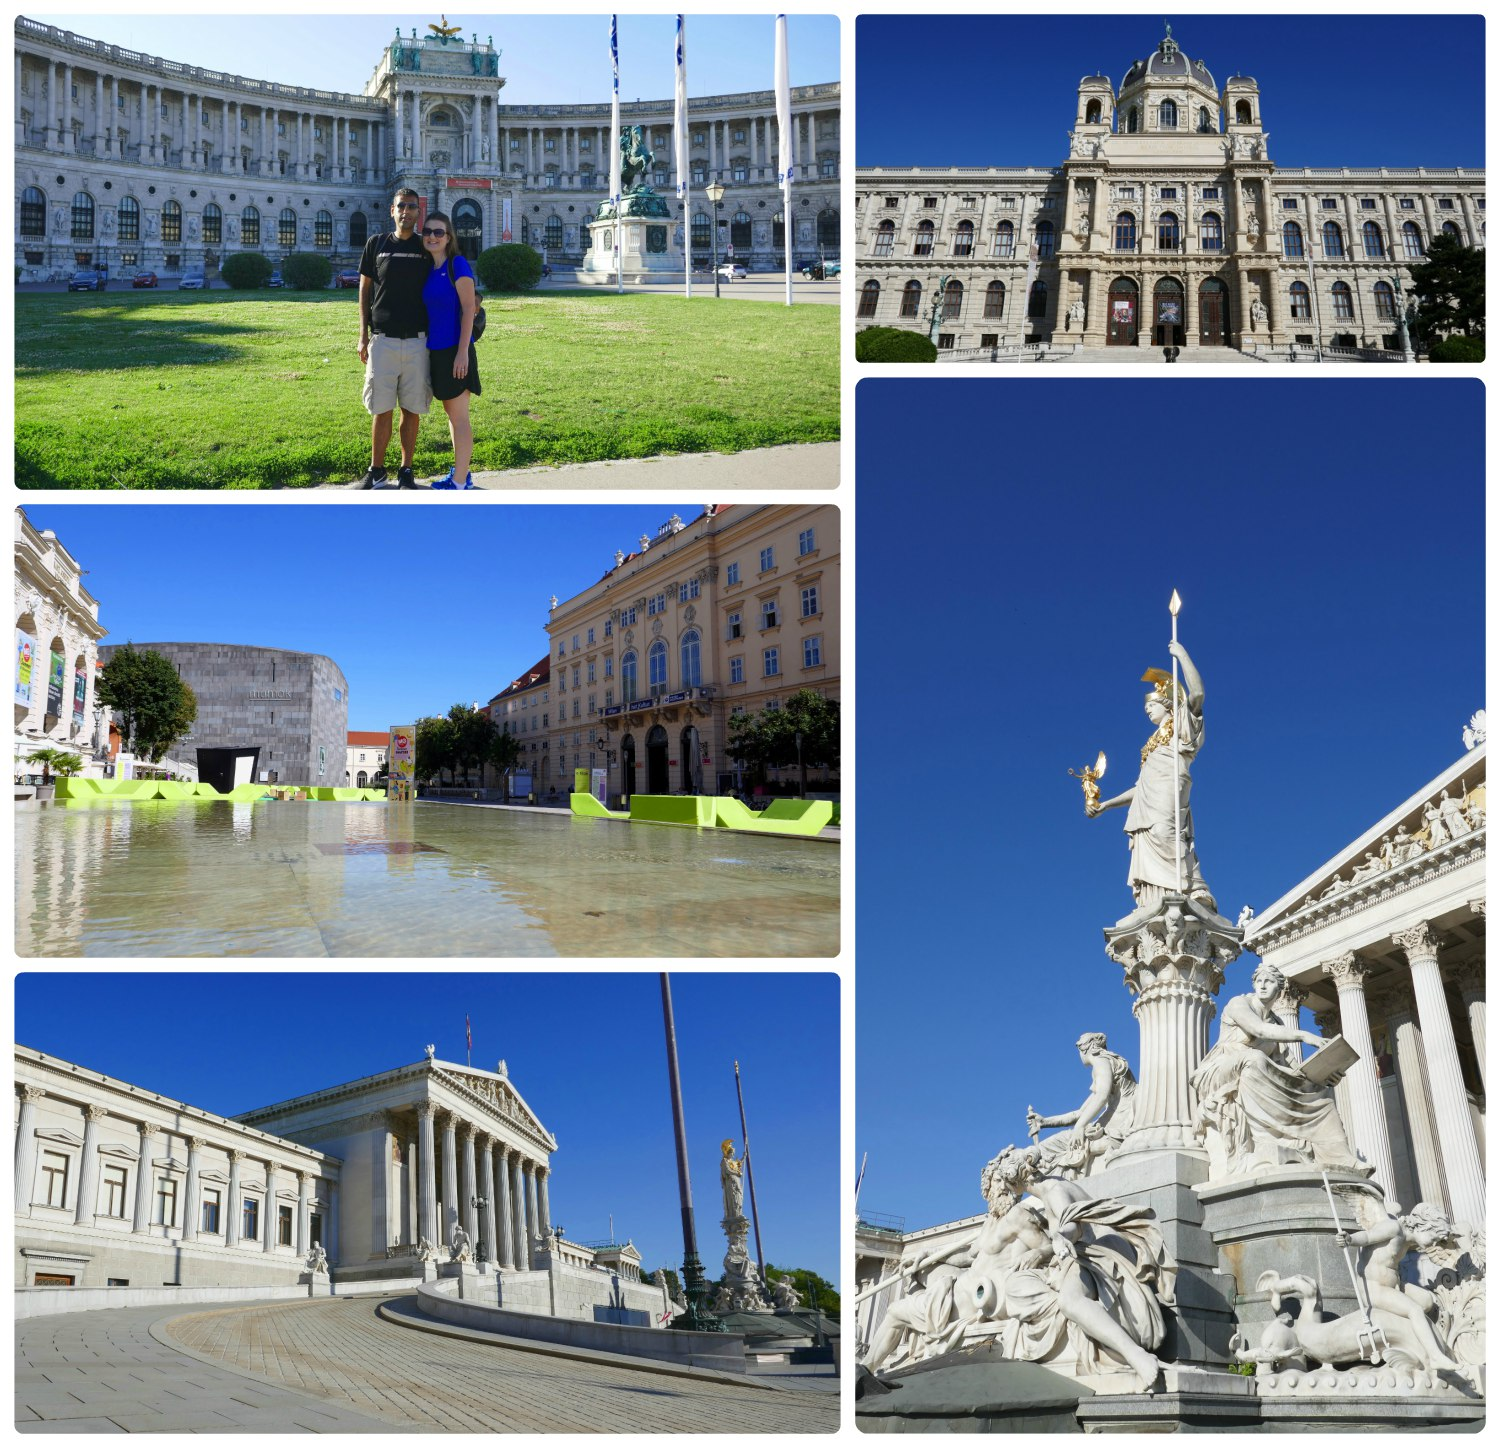 Most of the destinations in Vienna are on or near Ringstrasse. Clockwise (from the top): Neue Burg Imperial Palace (home of the Austrian National Library), the Museum of National History, the fountain in front of Parliament, the driveway and front exterior of Parliament, courtyard and fountain inside Museum Quarter.